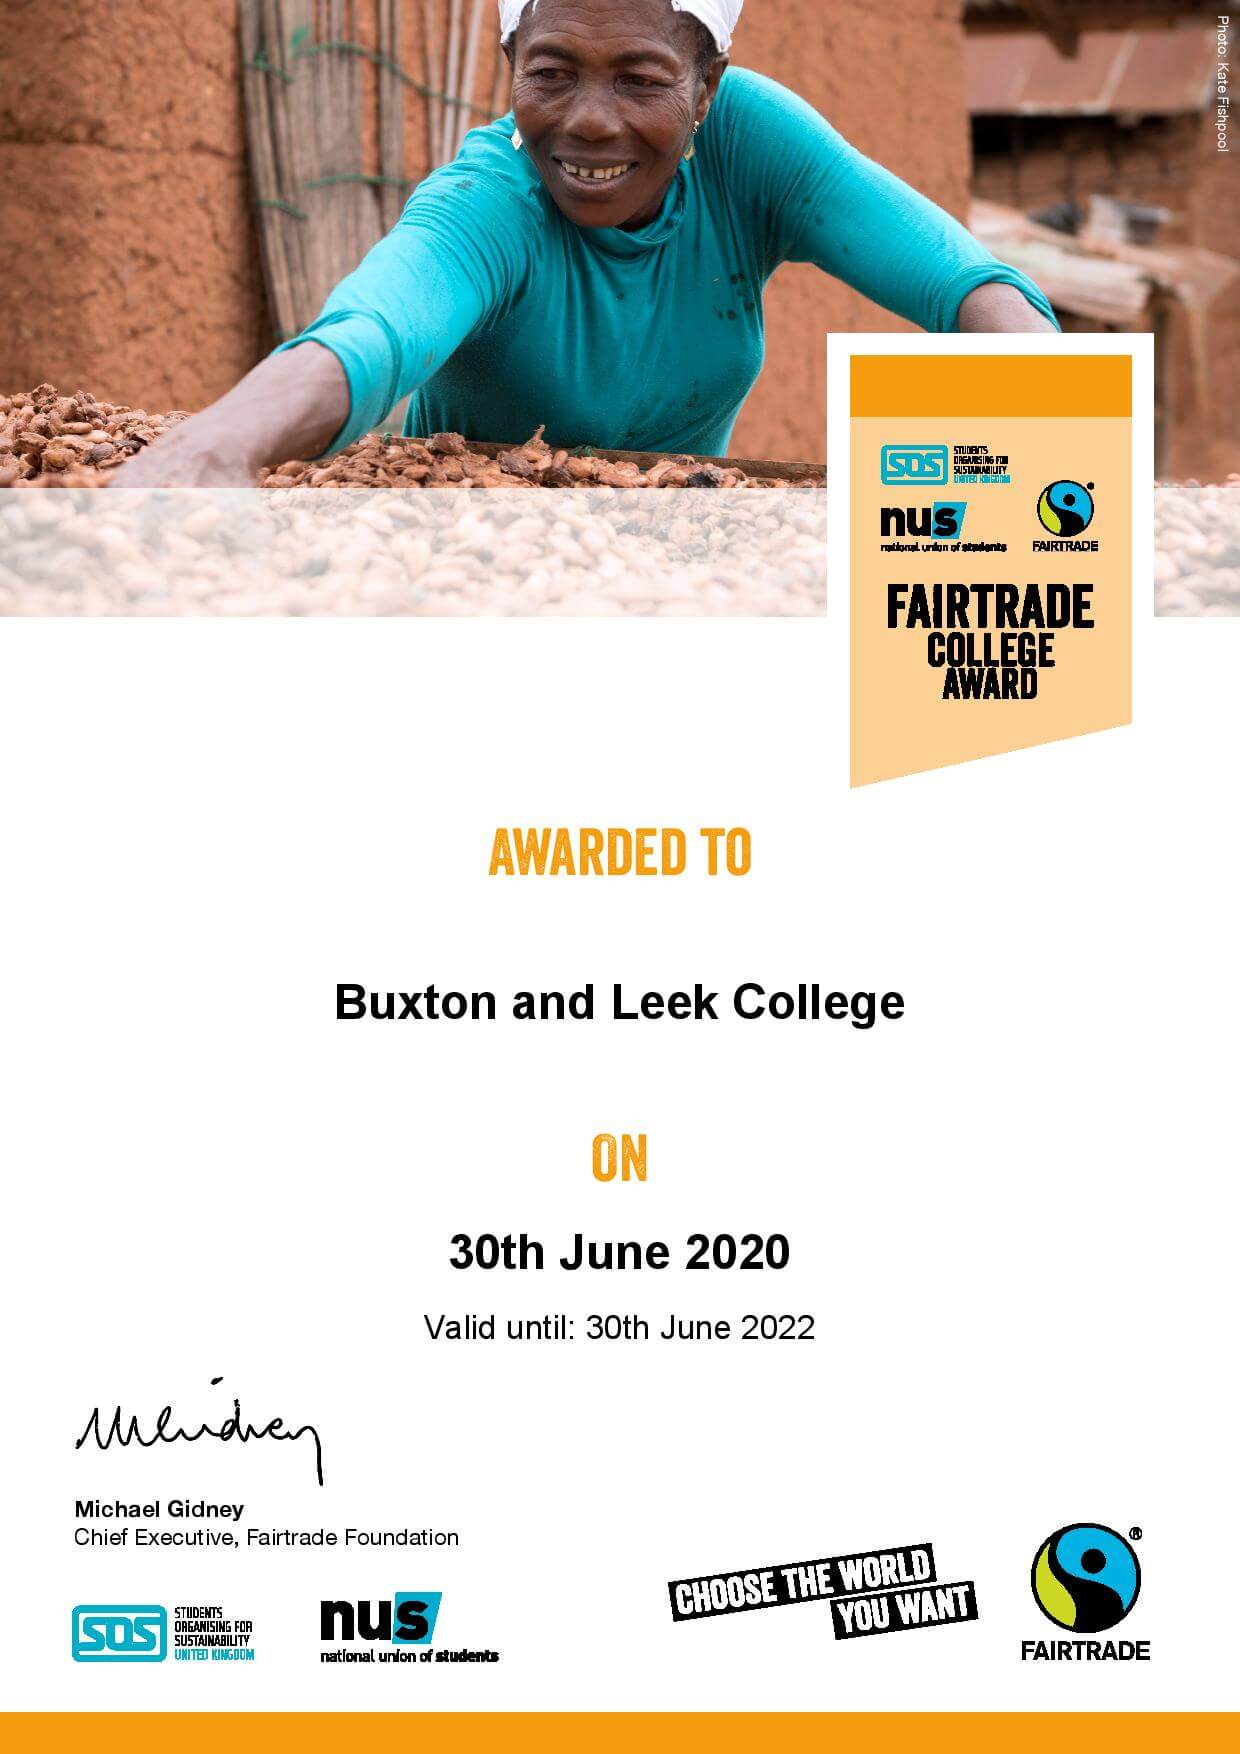 The Buxton and Leek colleges were awarded a Fairtrade certificate on the 30th June 2020